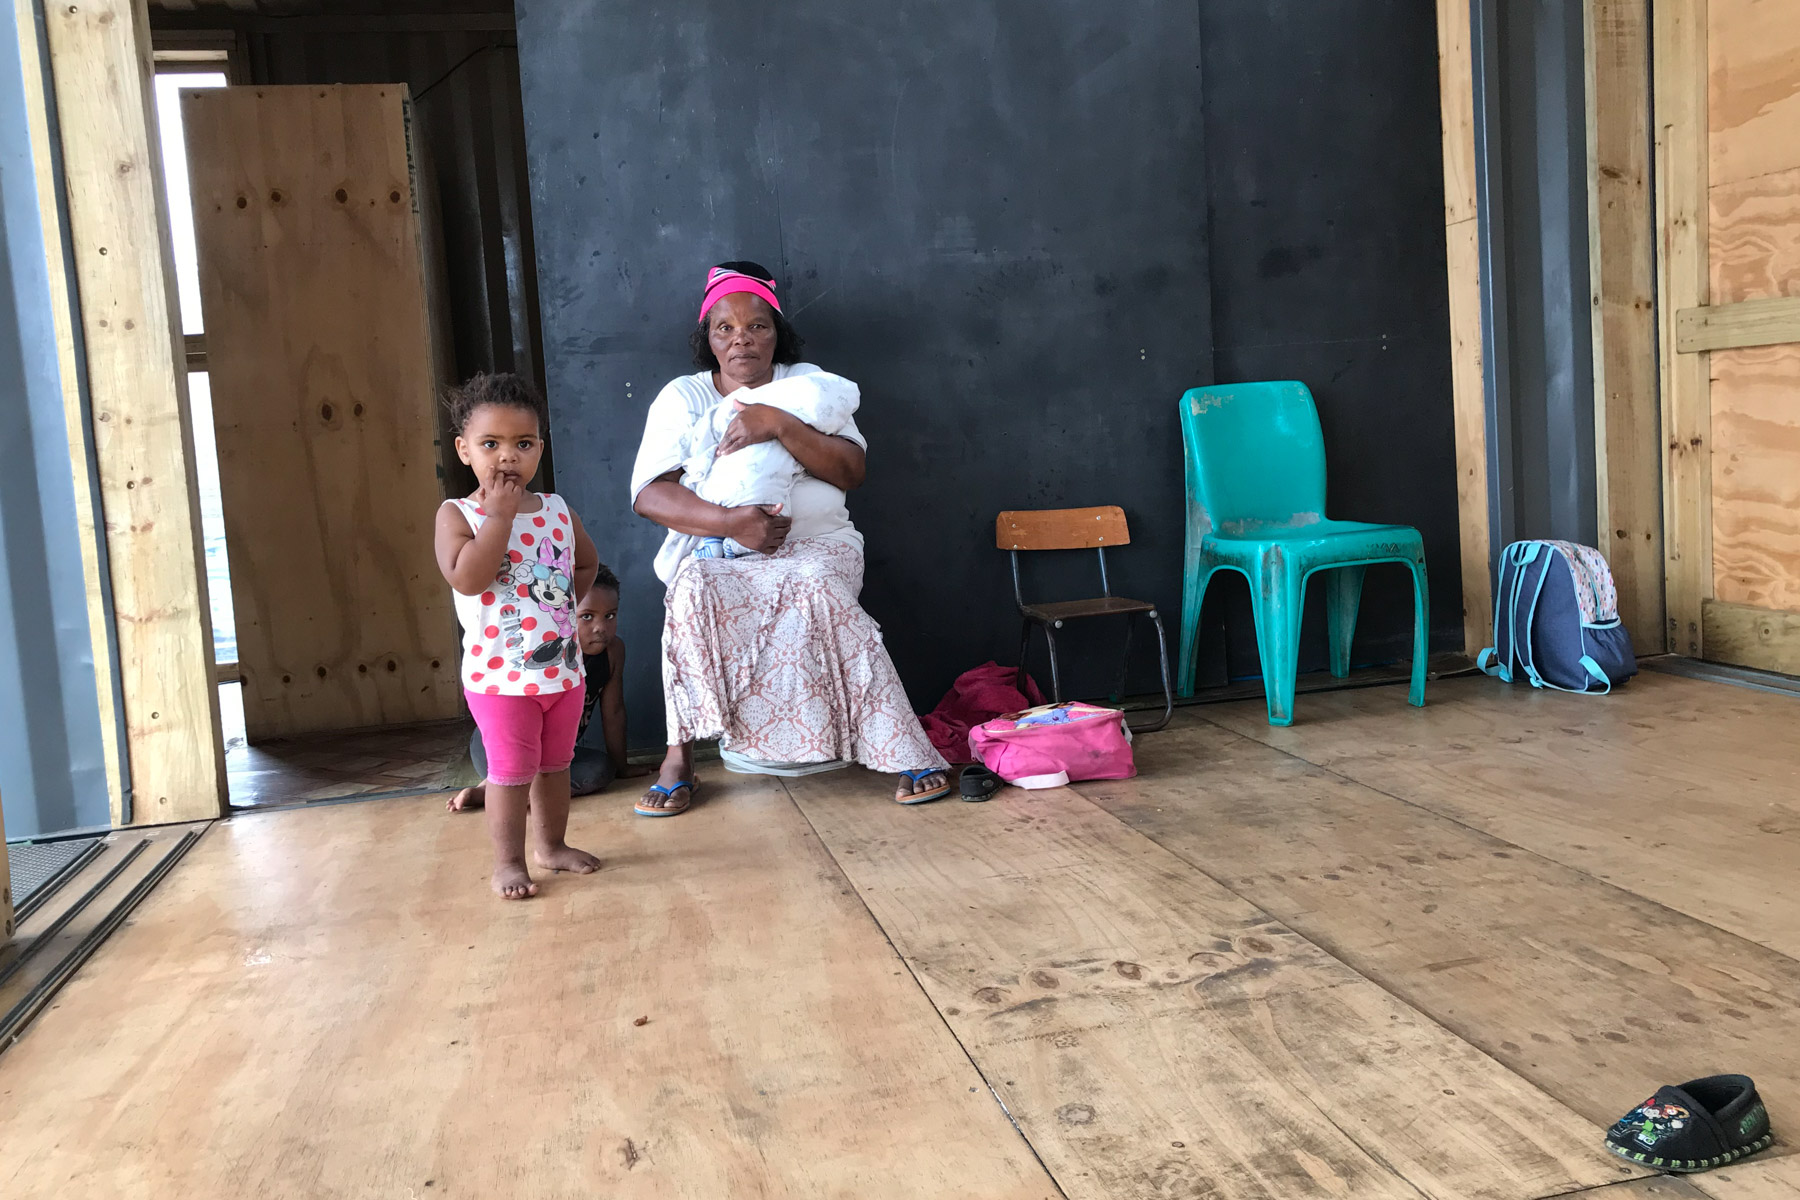 24 March 2020: Thobeka Mbada, an Airport Valley resident and teacher at the newly built creche, is not getting paid during lockdown because the facility is closed